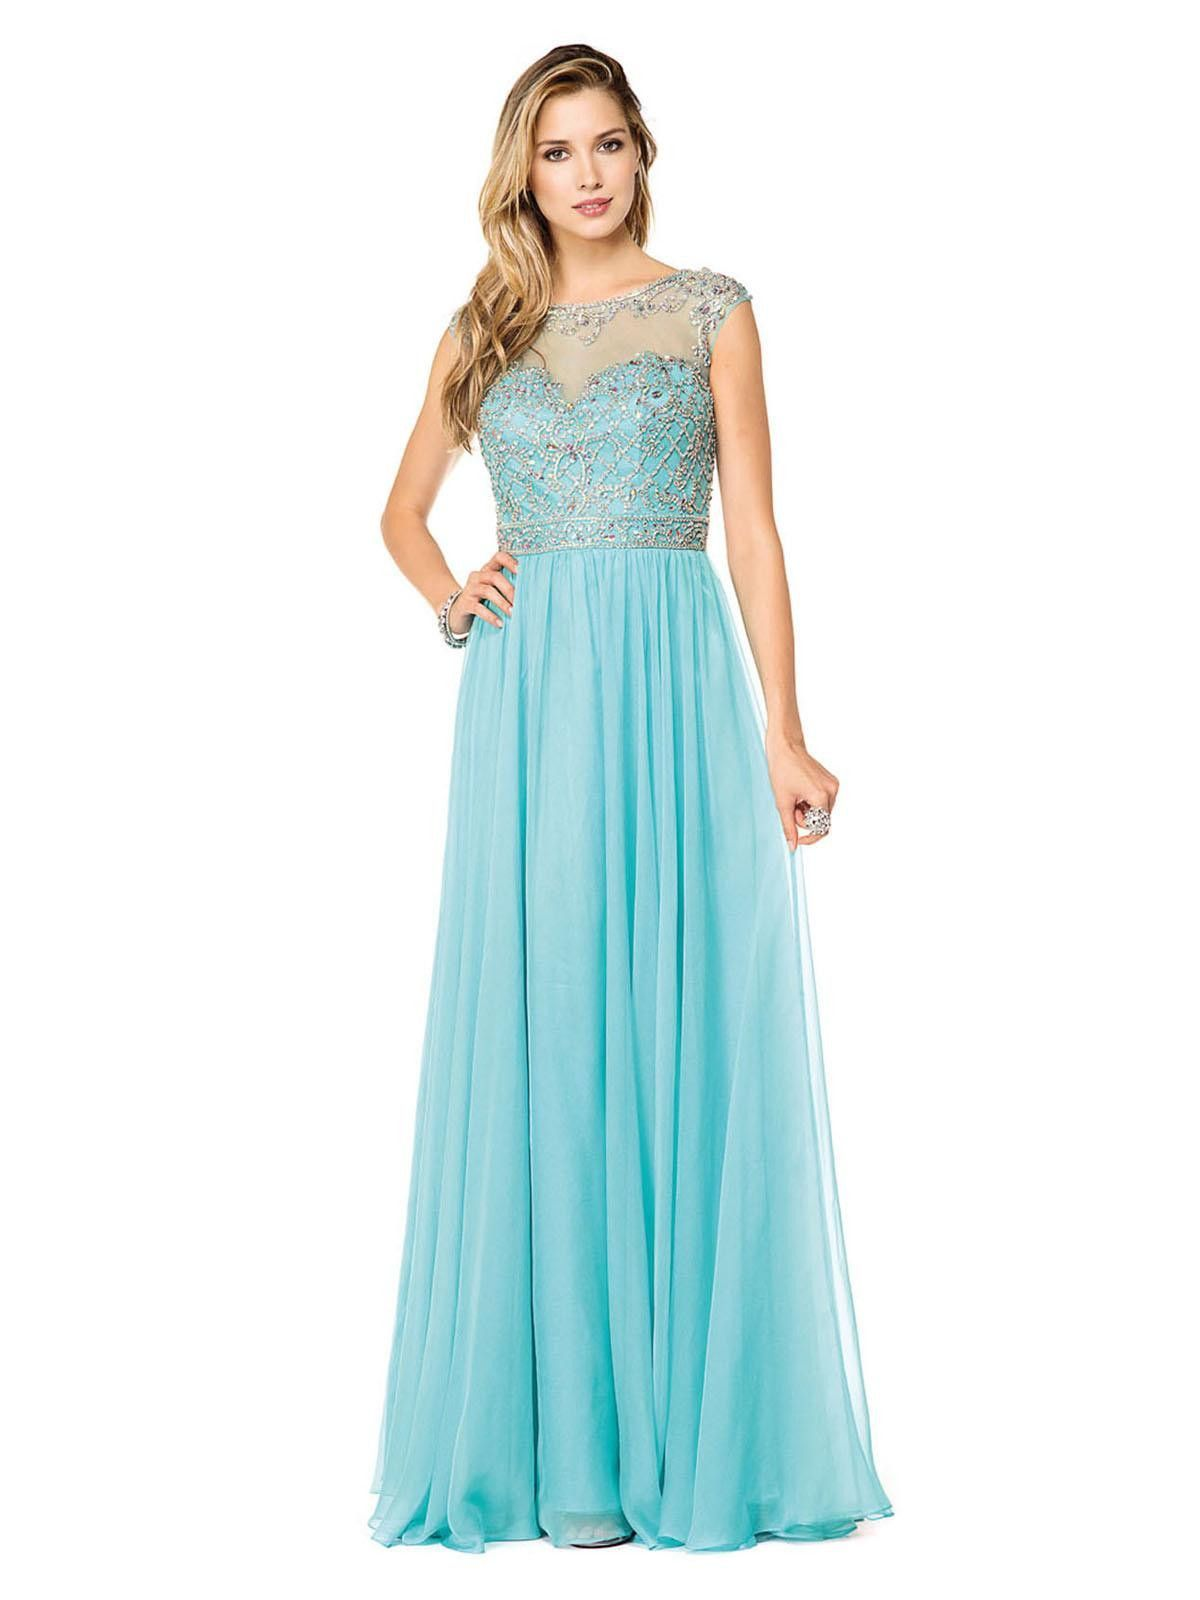 Glow g in stock sz cap sleeve fit and flow prom evening mother